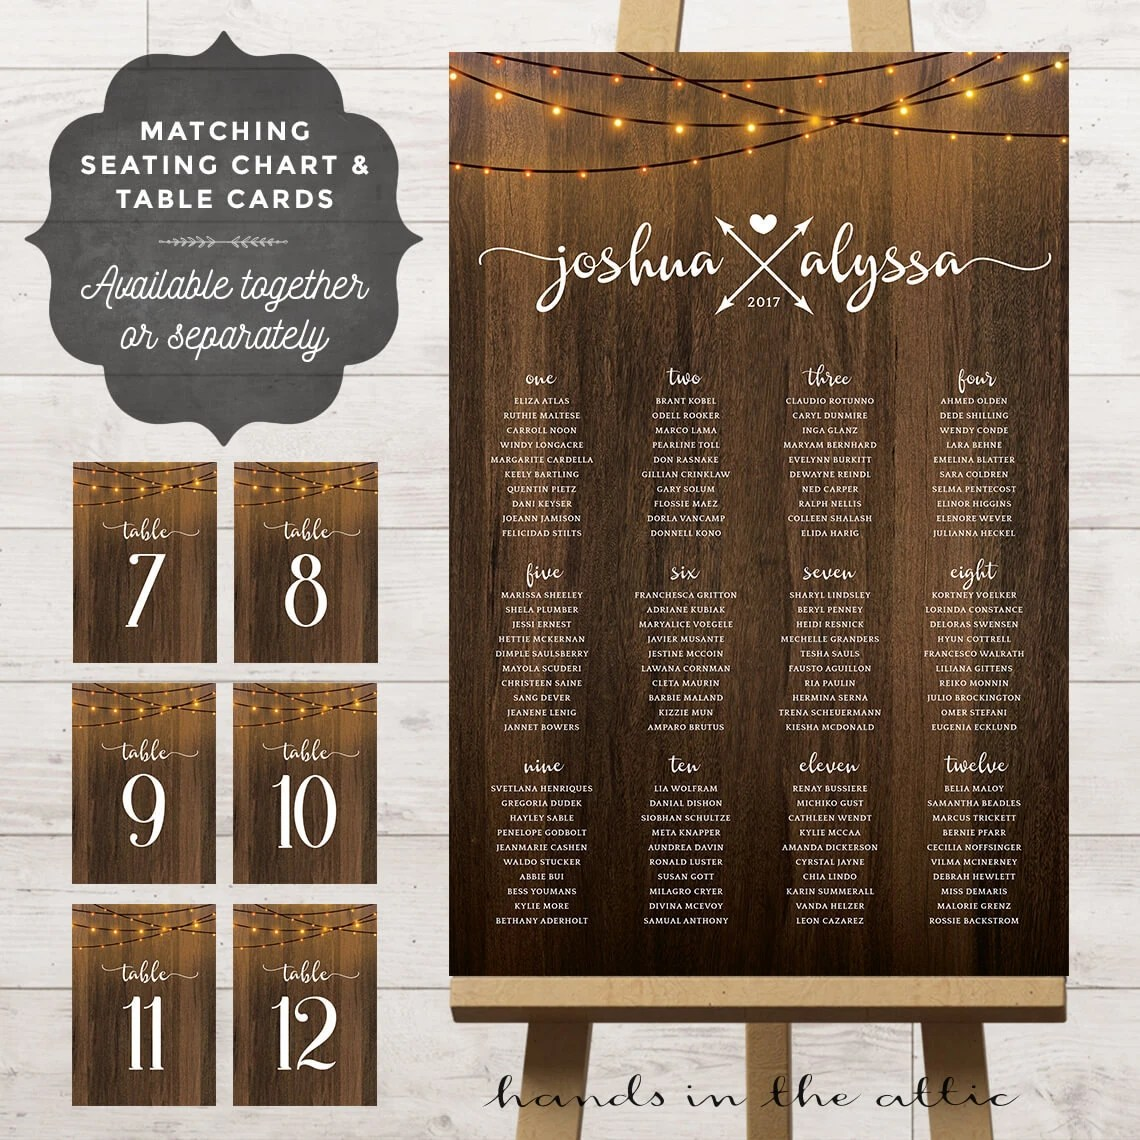 Table assignment board wedding reception seating chart ideas Etsy